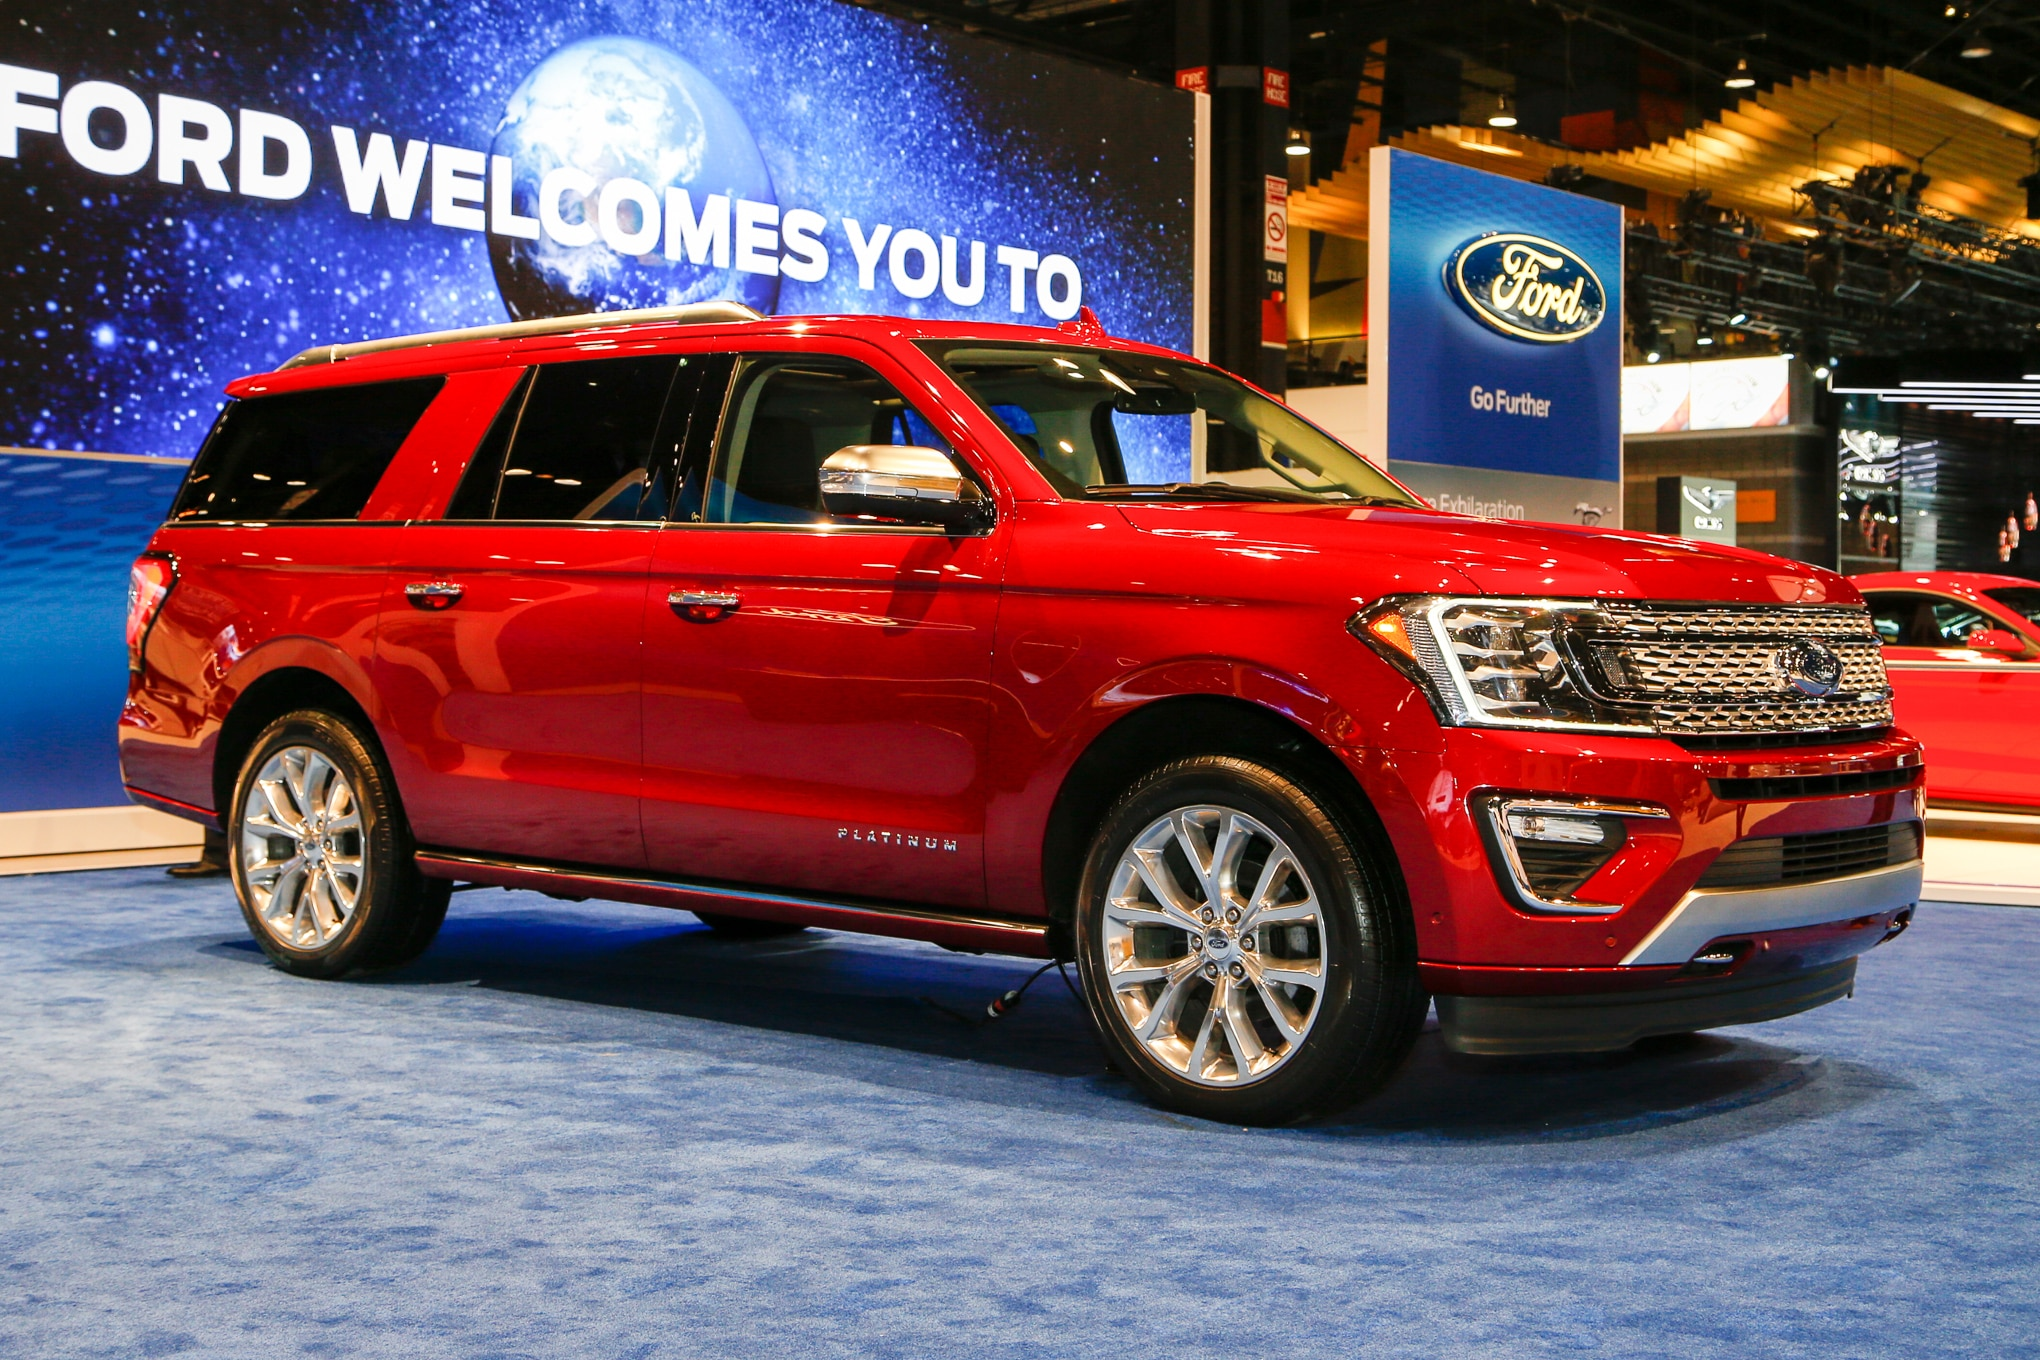 Ford Shows Off Special F-150 Trucks for SEMA | Automobile ...